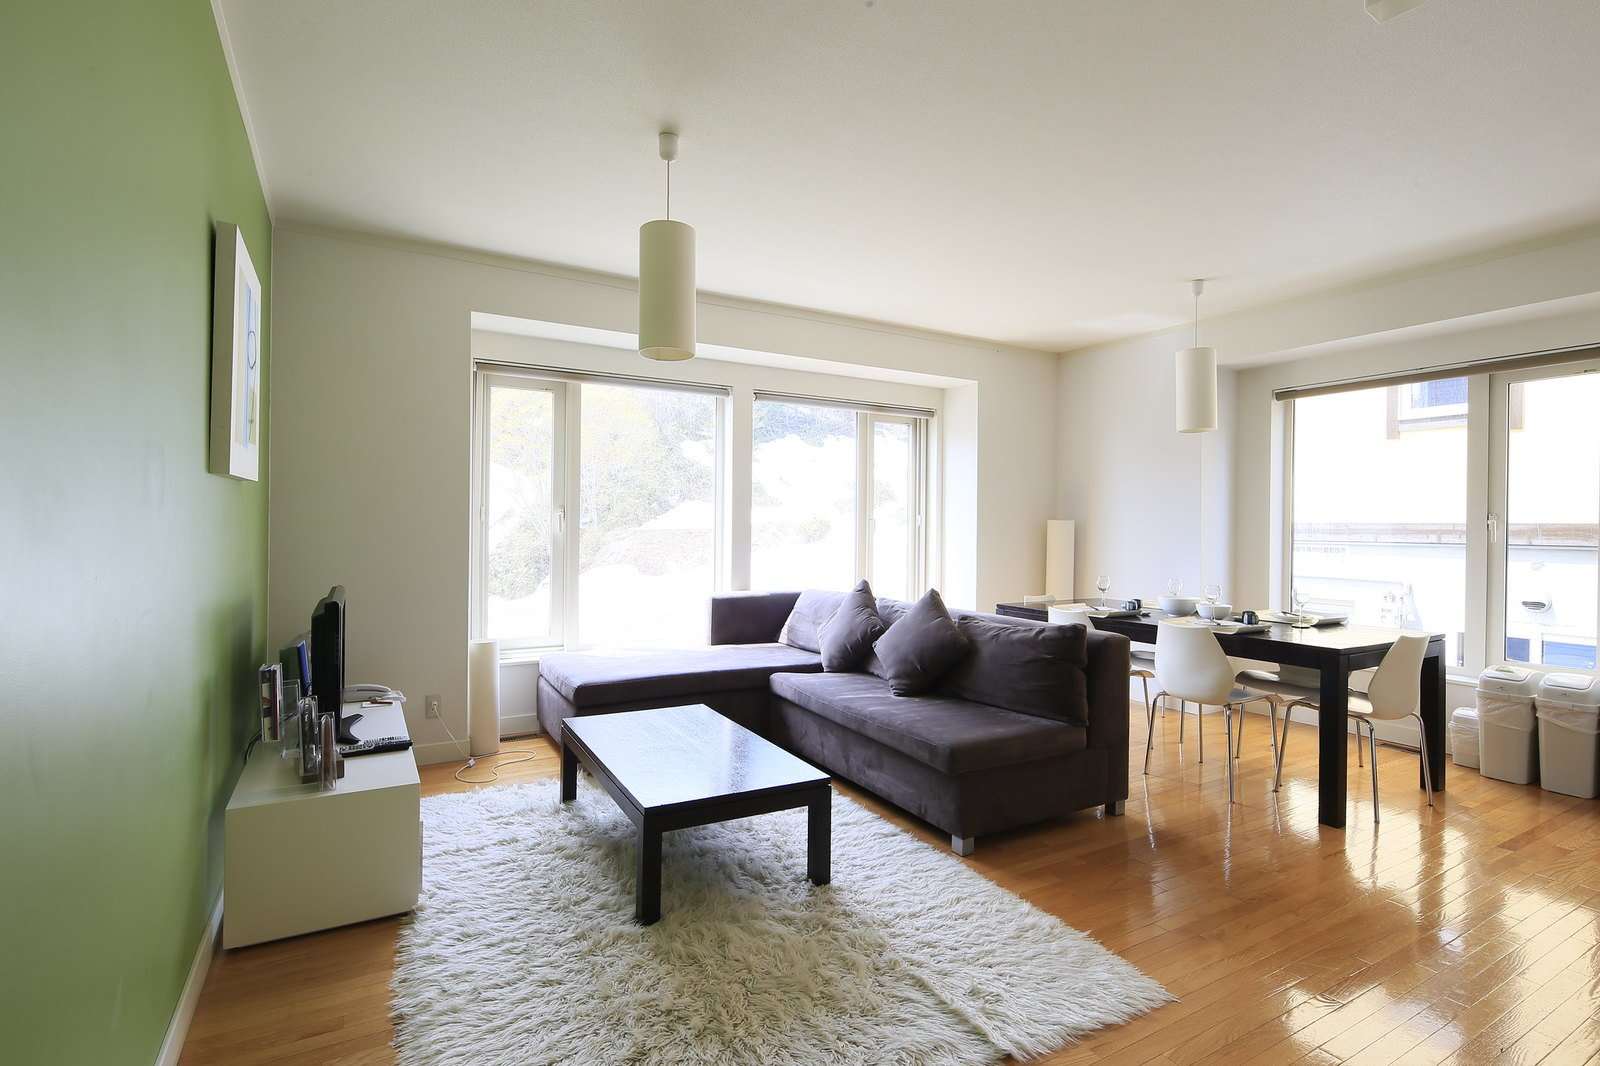 Living room of a 3 bedroom apartment at First Tracks, Niseko.